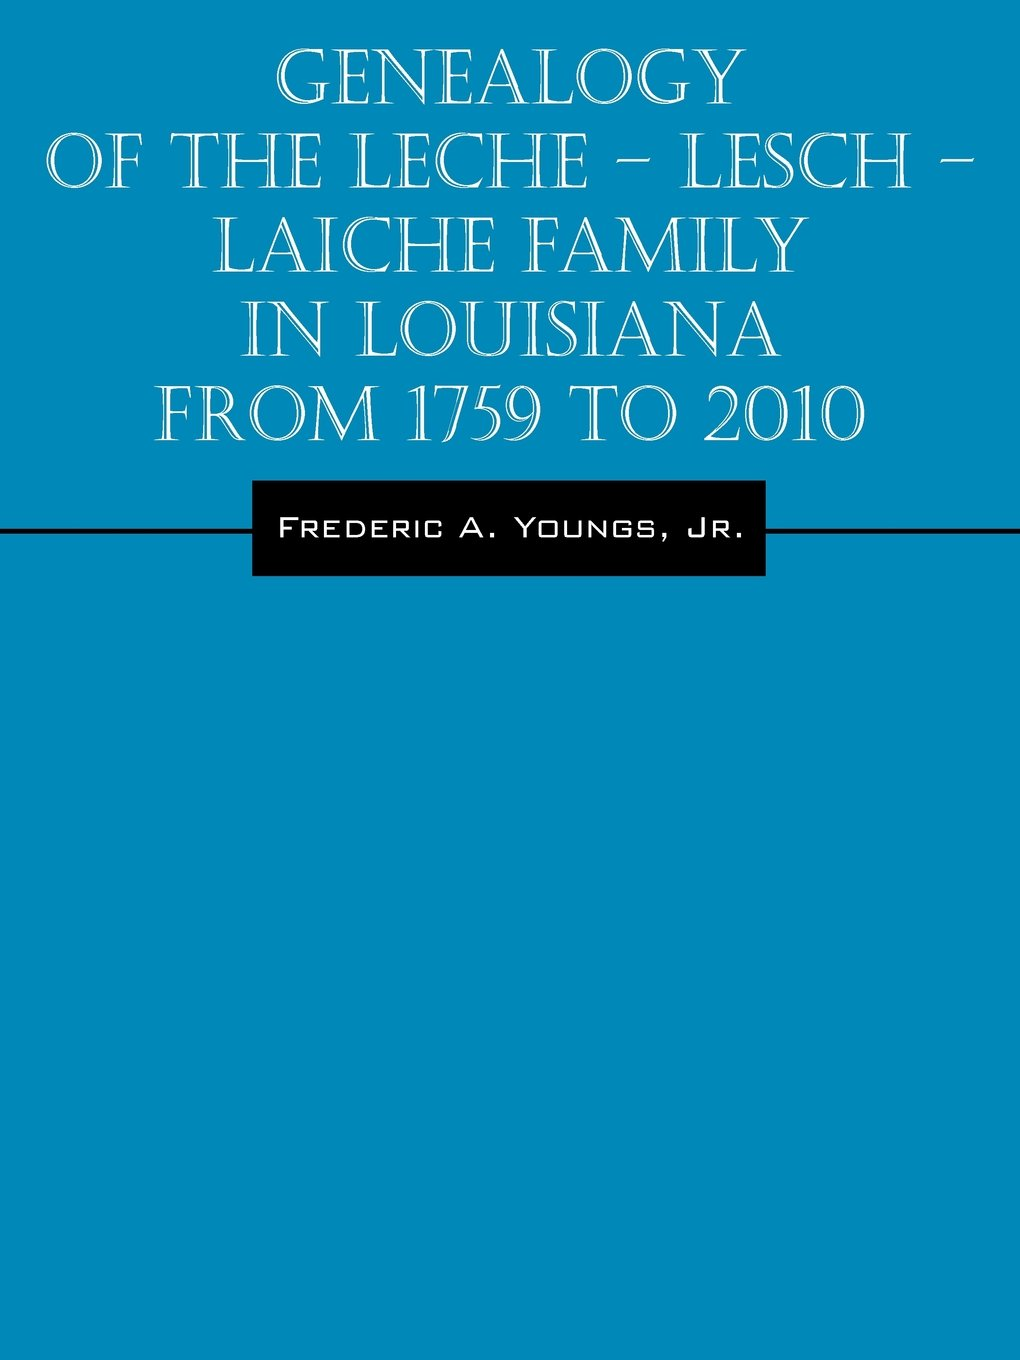 Genealogy of the Leche - Lesch - Laiche Family in Louisiana From 1759 to 2010 by Outskirts Press